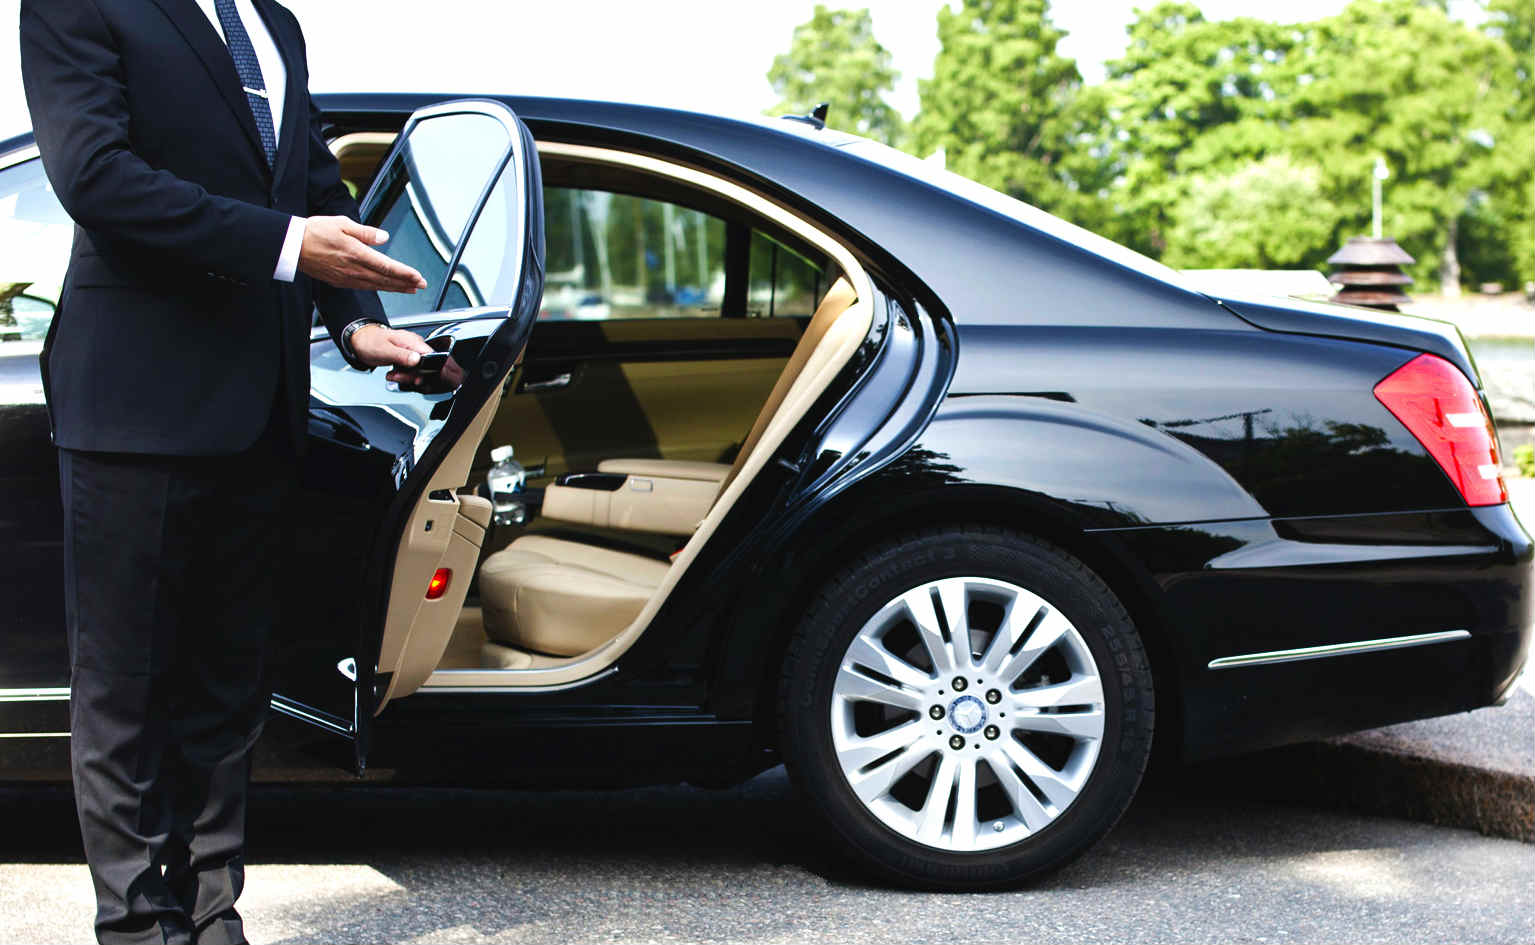 Limo Services for Every Occasion